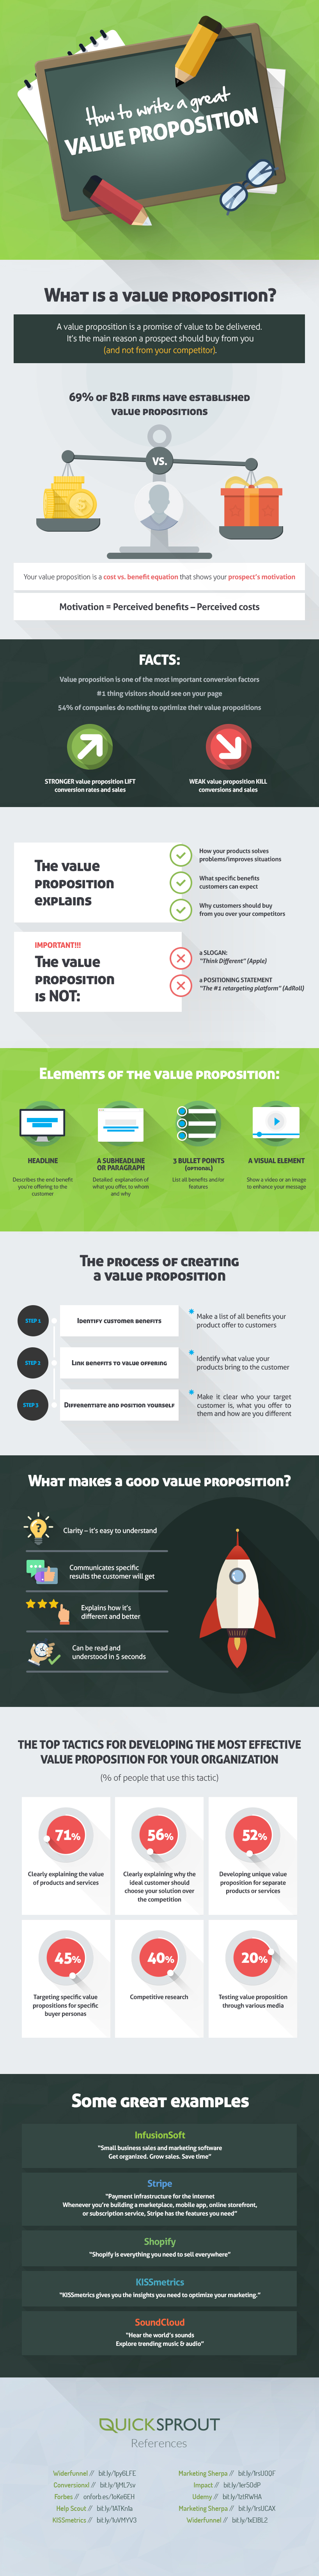 6 Tips to a Great Value Proposition (INFOGRAPHIC)